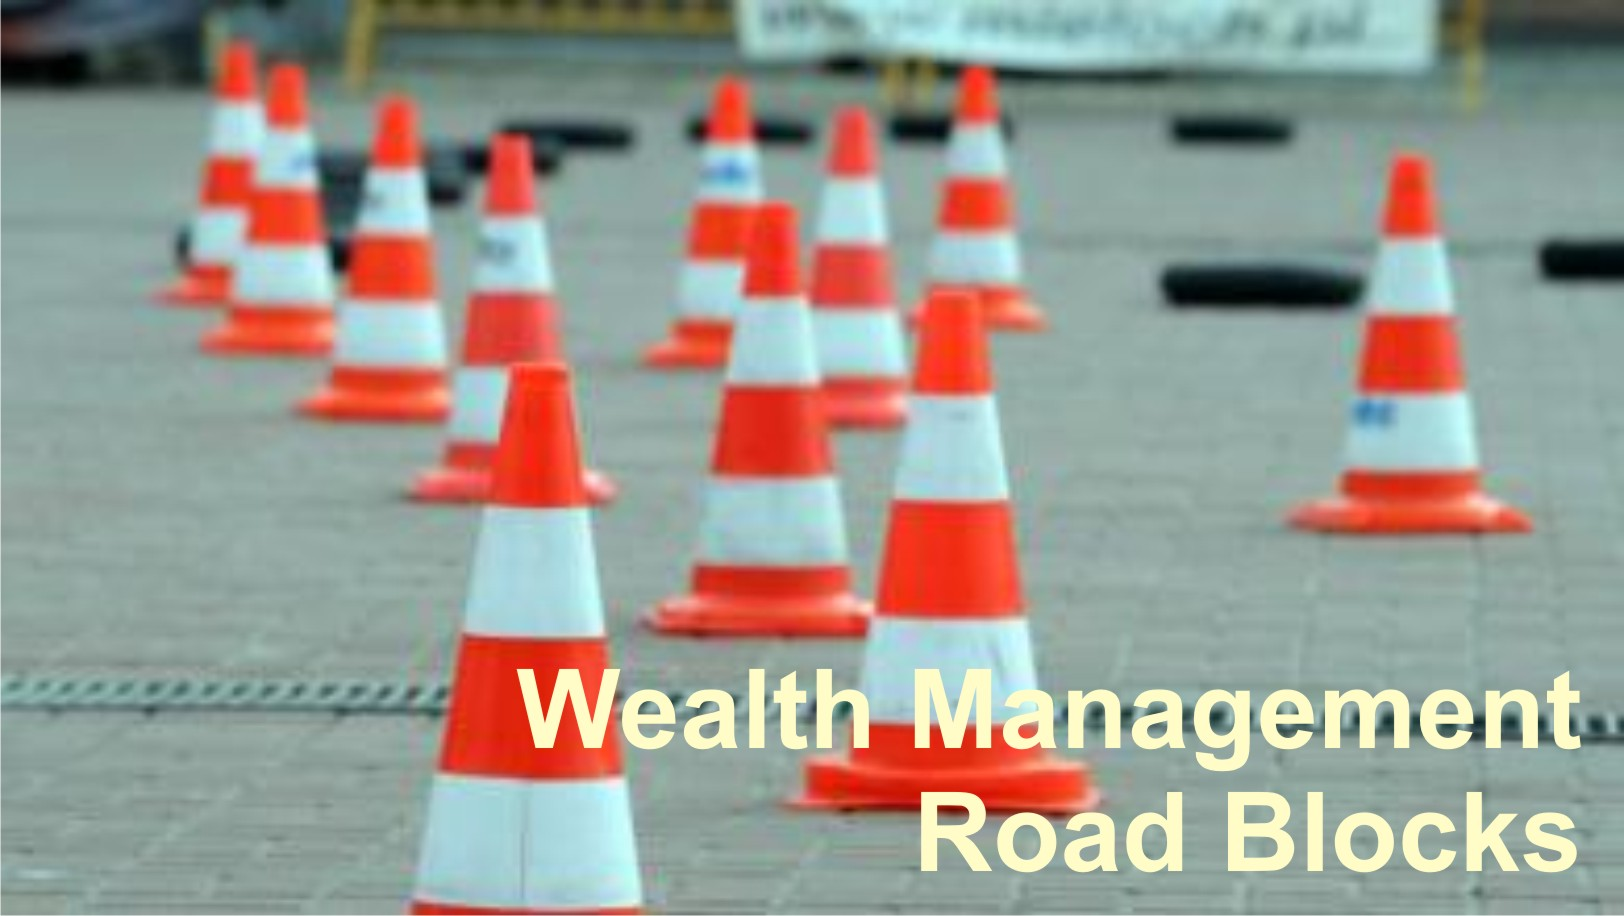 Title: Road Blocks to Wealth Management - Description: Threats to Wealth Management Industry